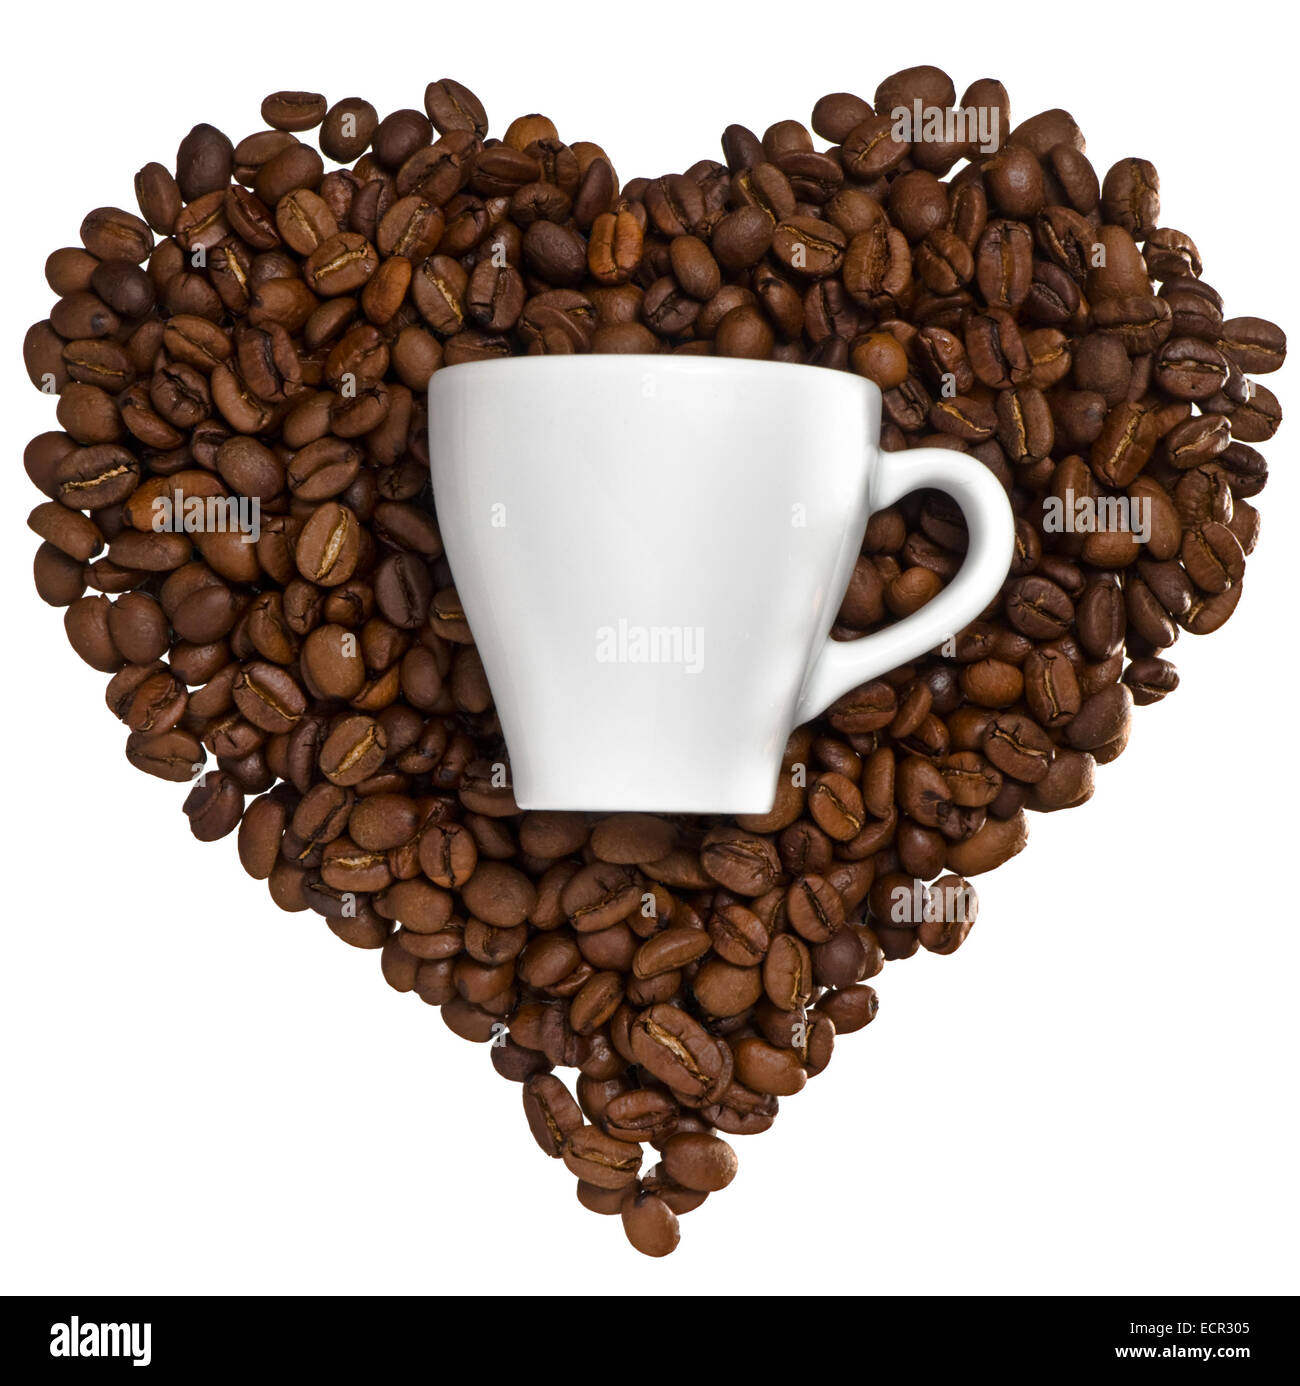 This is a concept about our love for coffee. - Stock Image